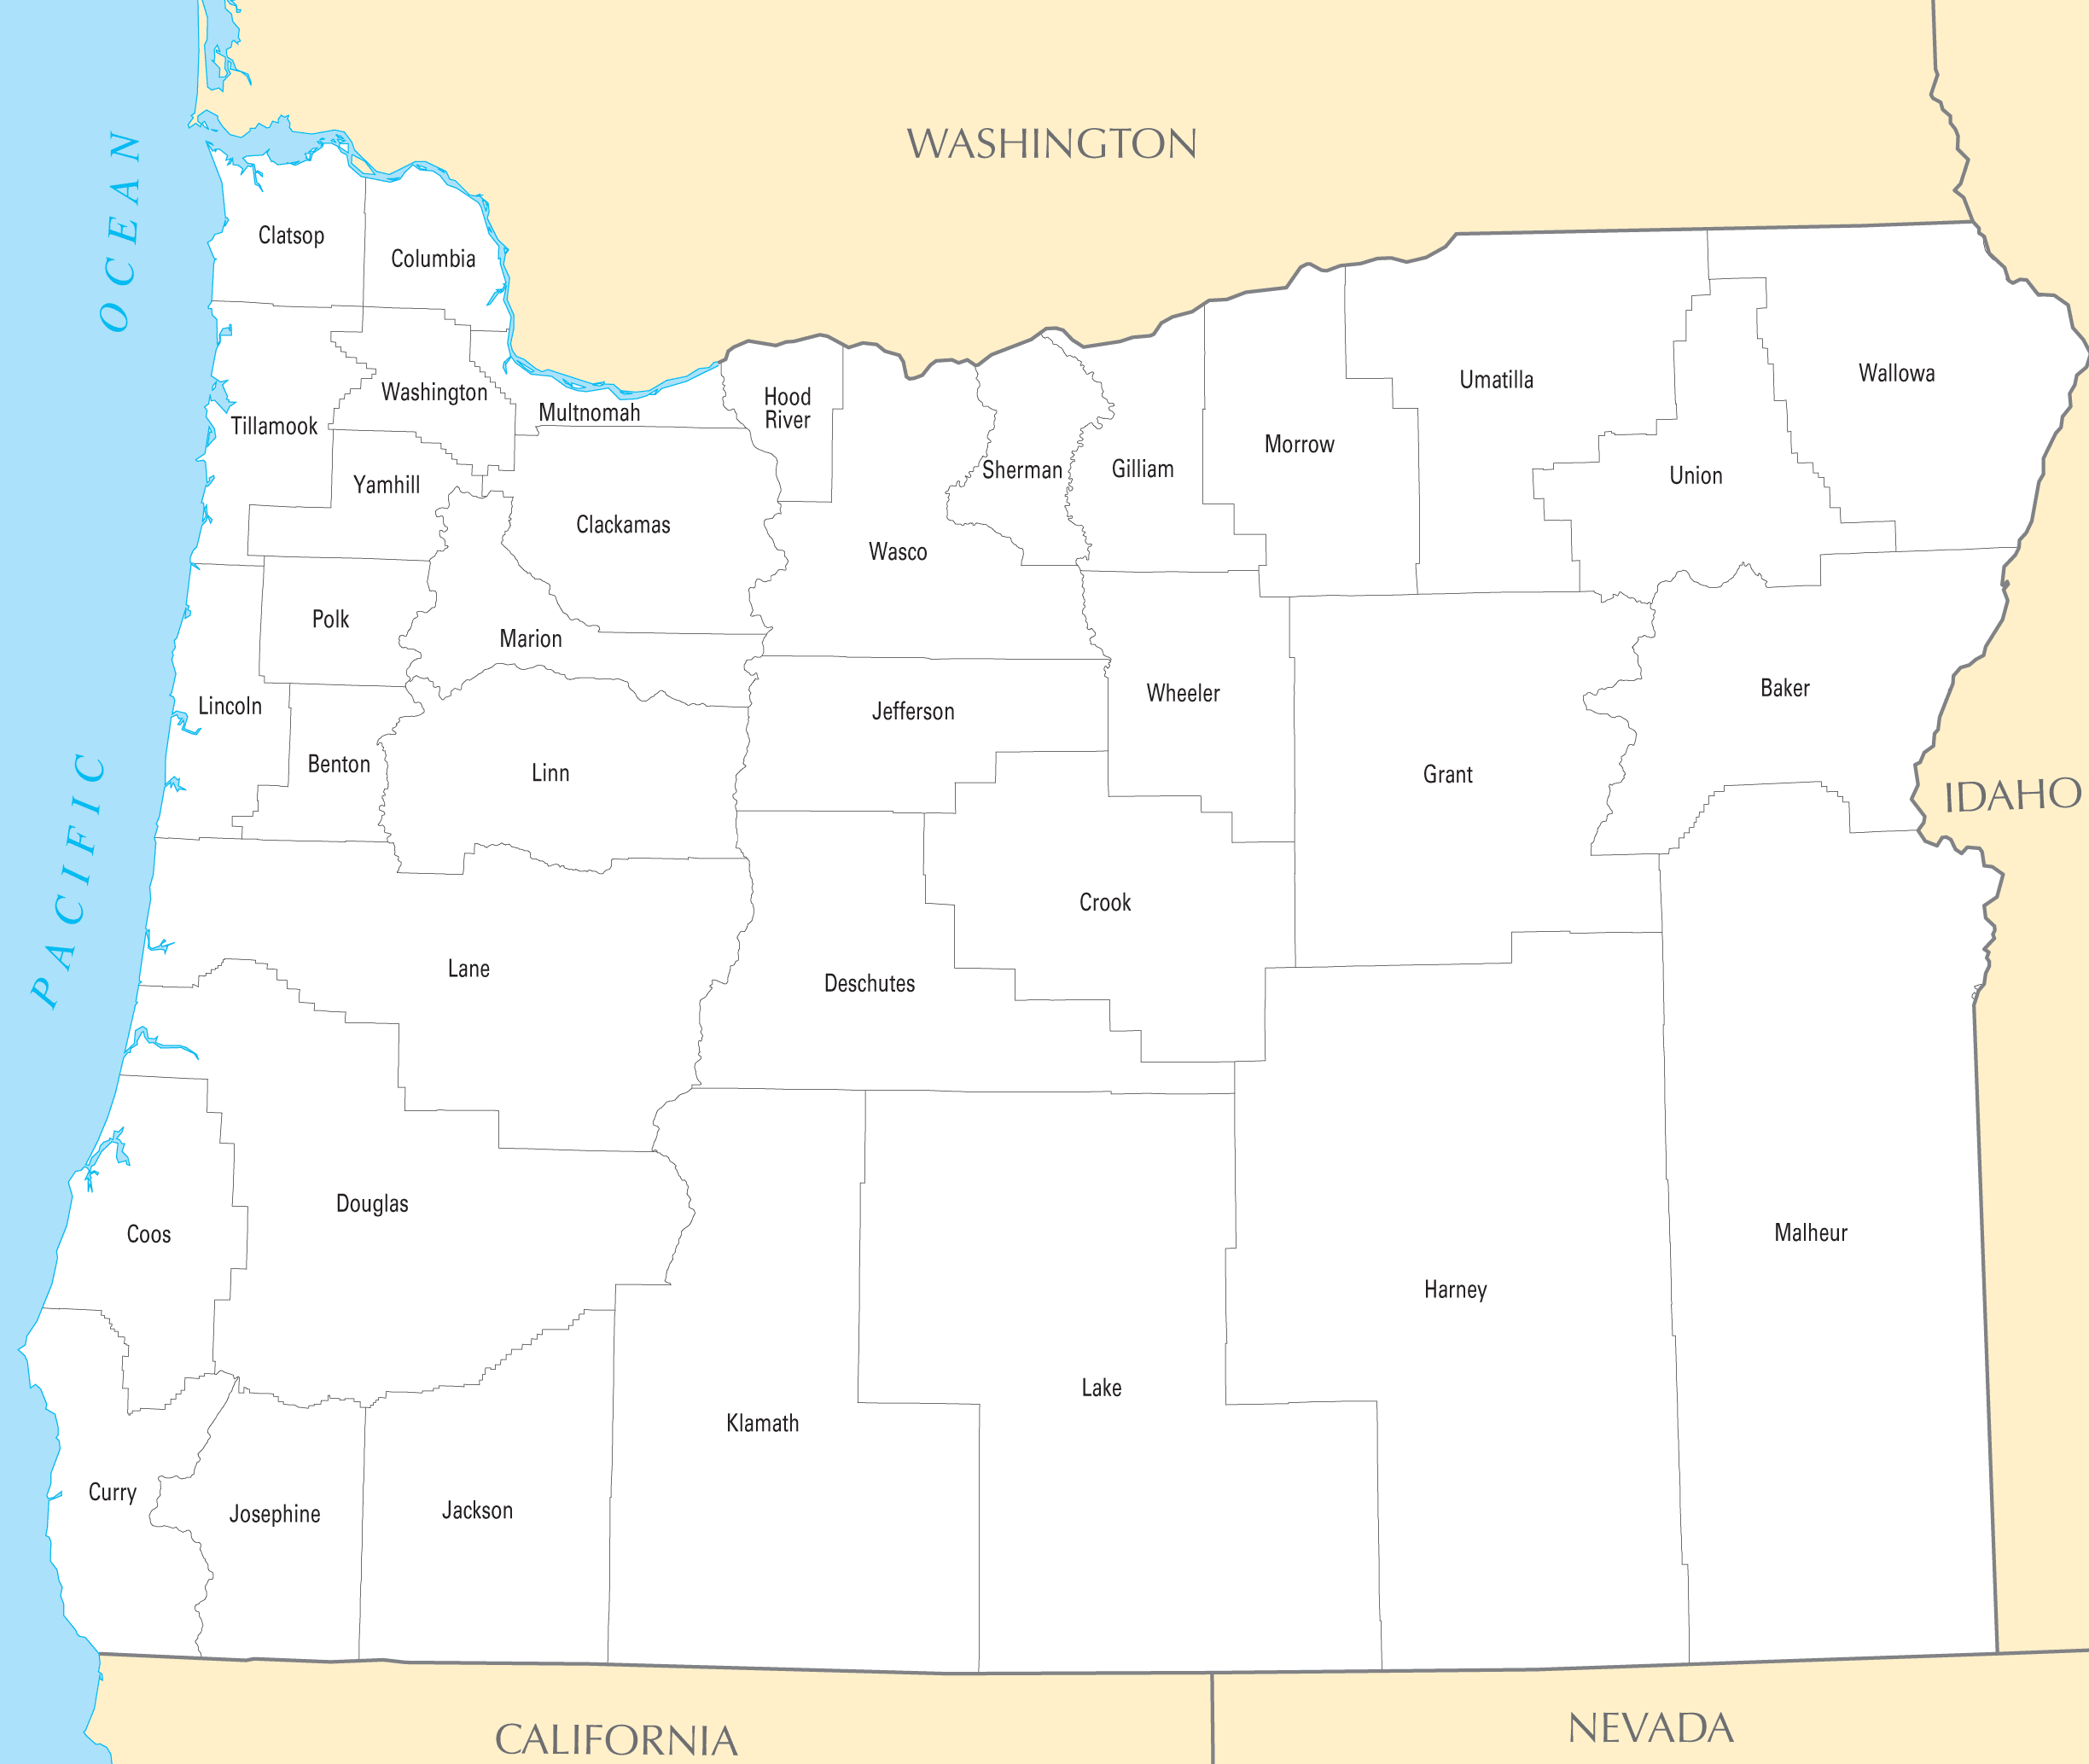 Oregon County Map Mapsofnet - Oregon county maps